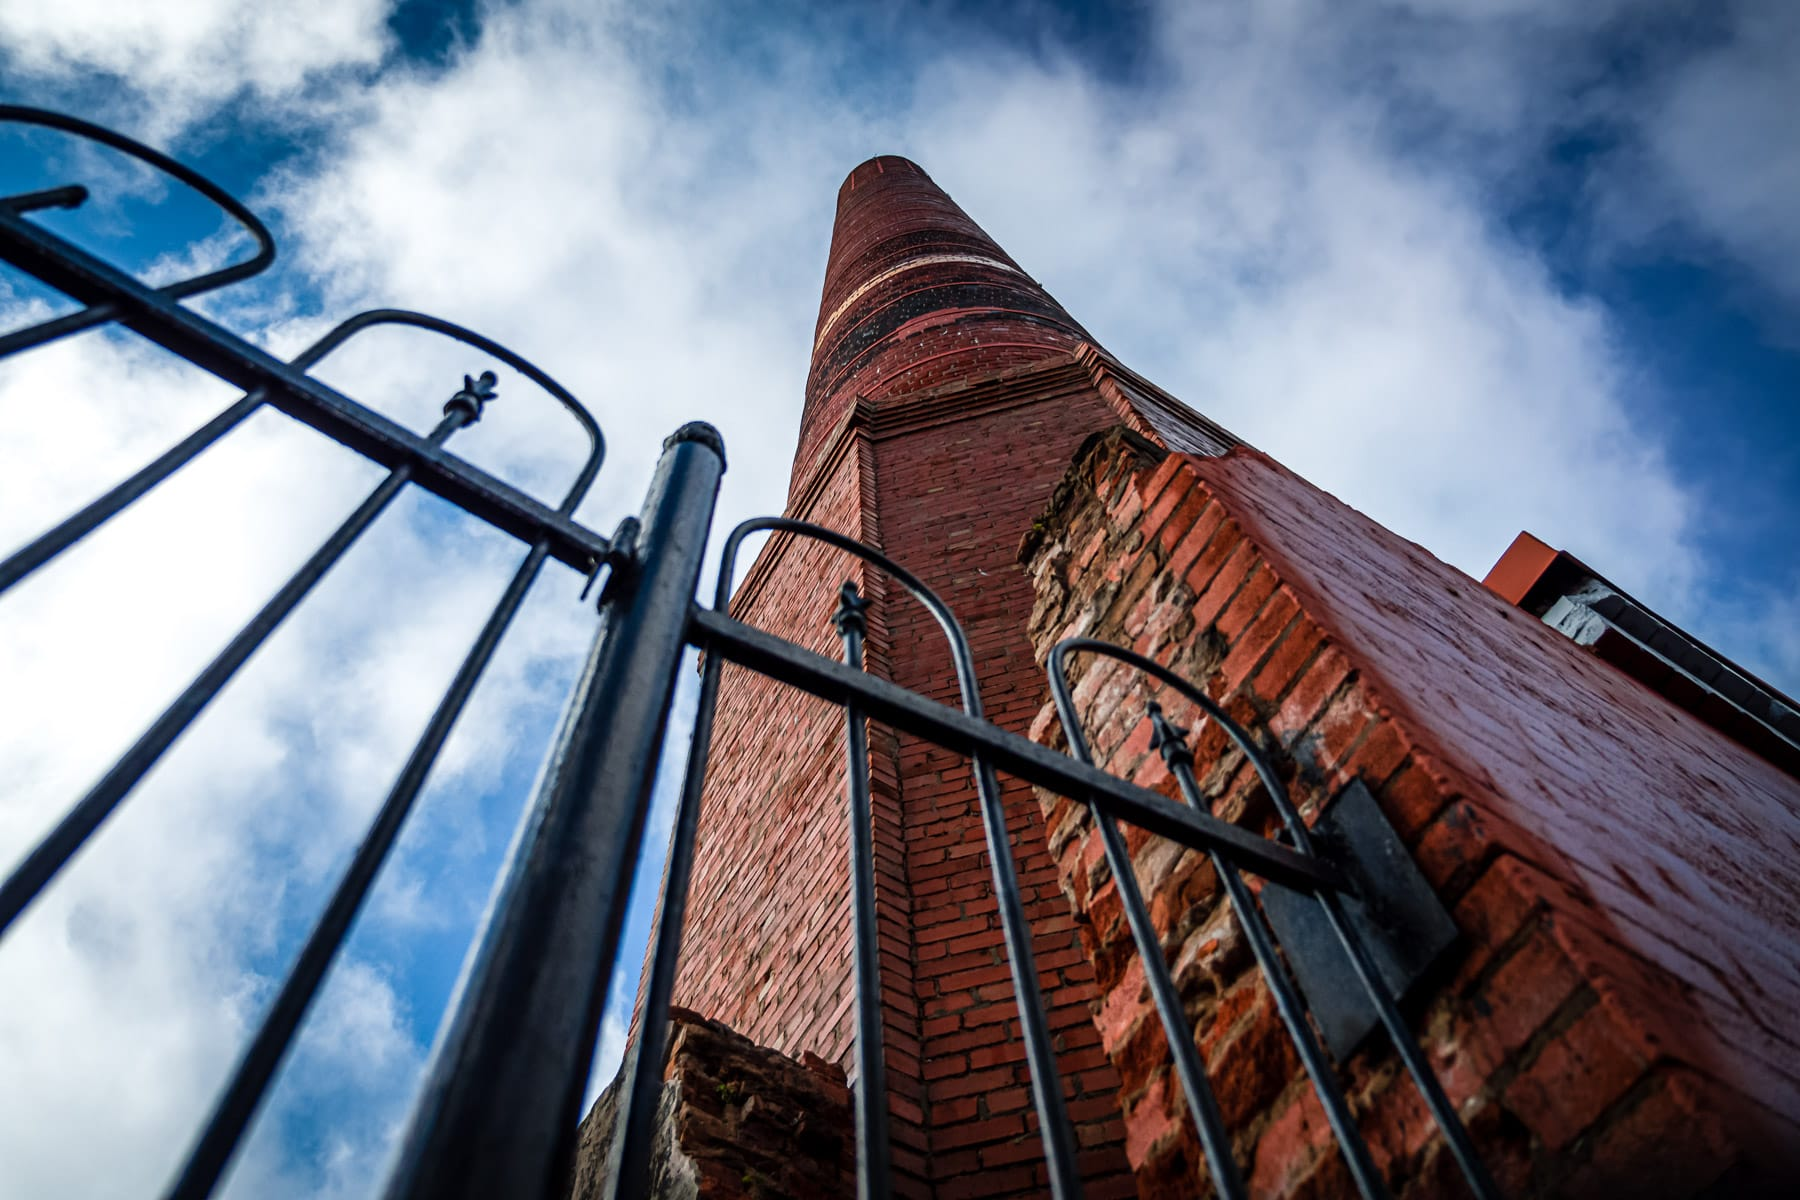 A brick chimney—a relic of a the first ice manufacturing plant in Texas—rises towards the clouds over Downtown Galveston, Texas.